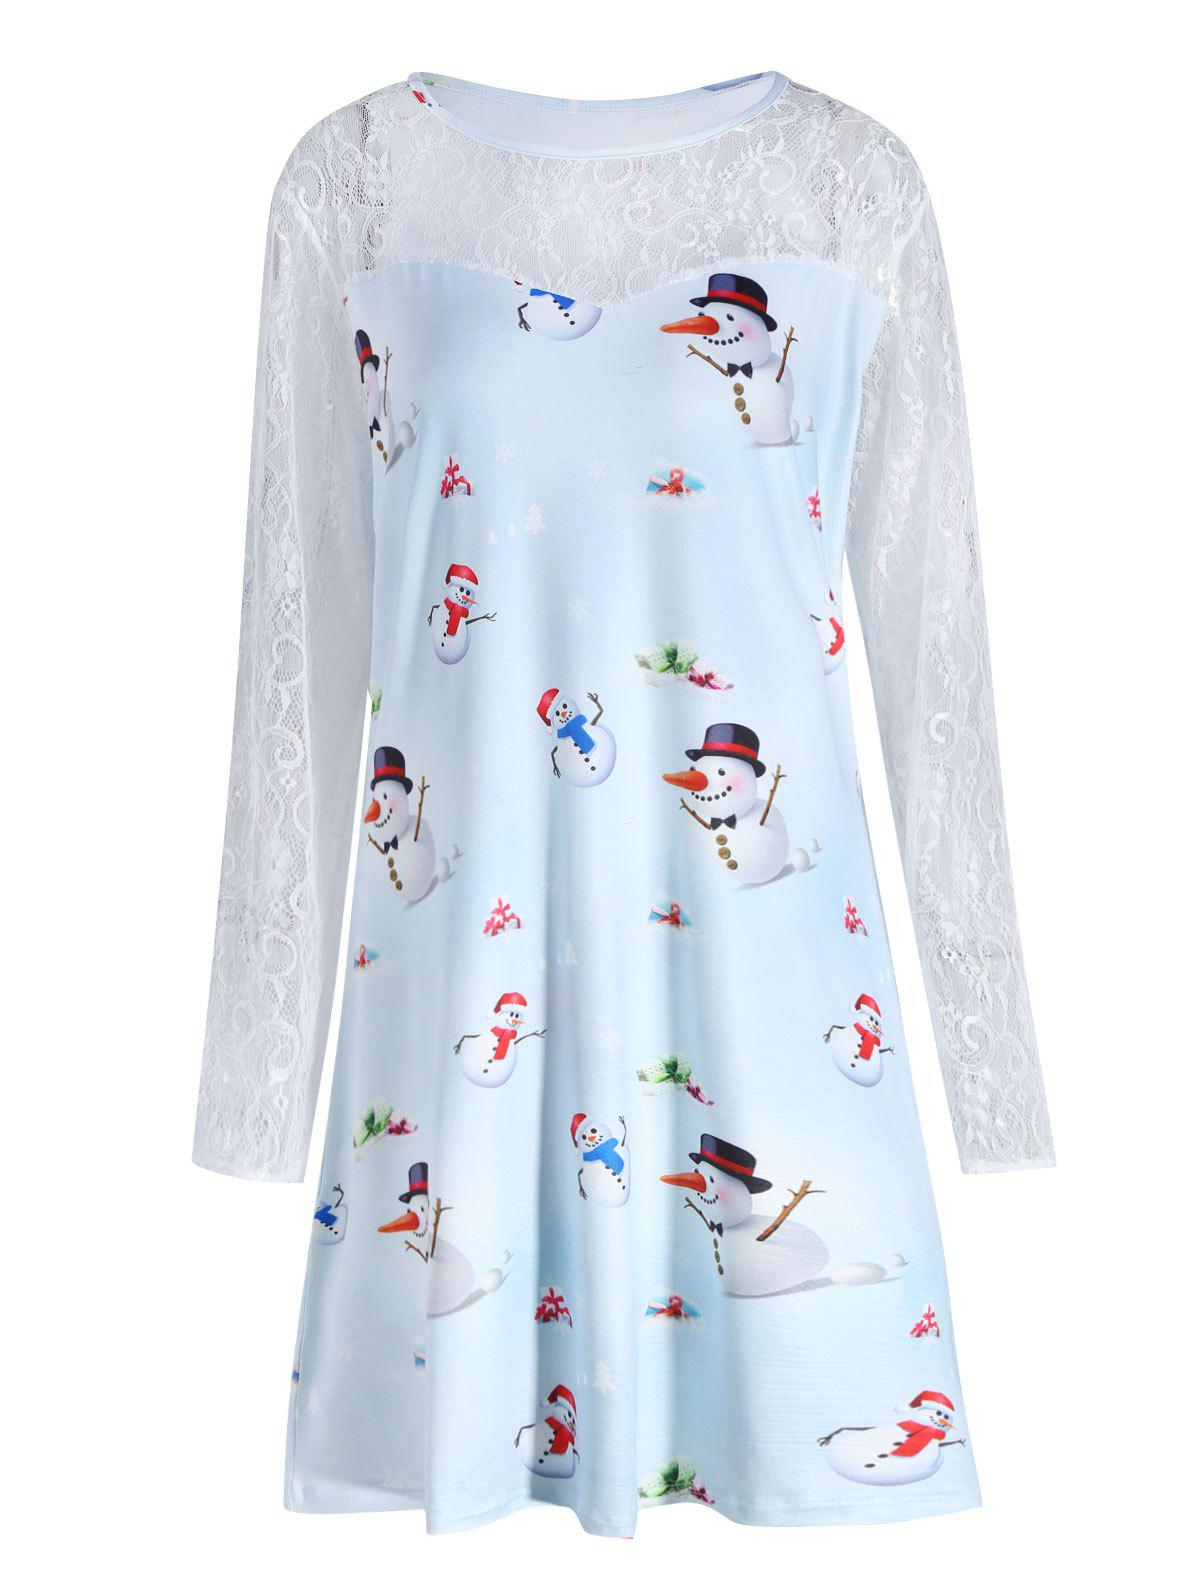 Plus Size Christmas Snowman Printed Lace Sleeve Dress - CLOUDY 4XL